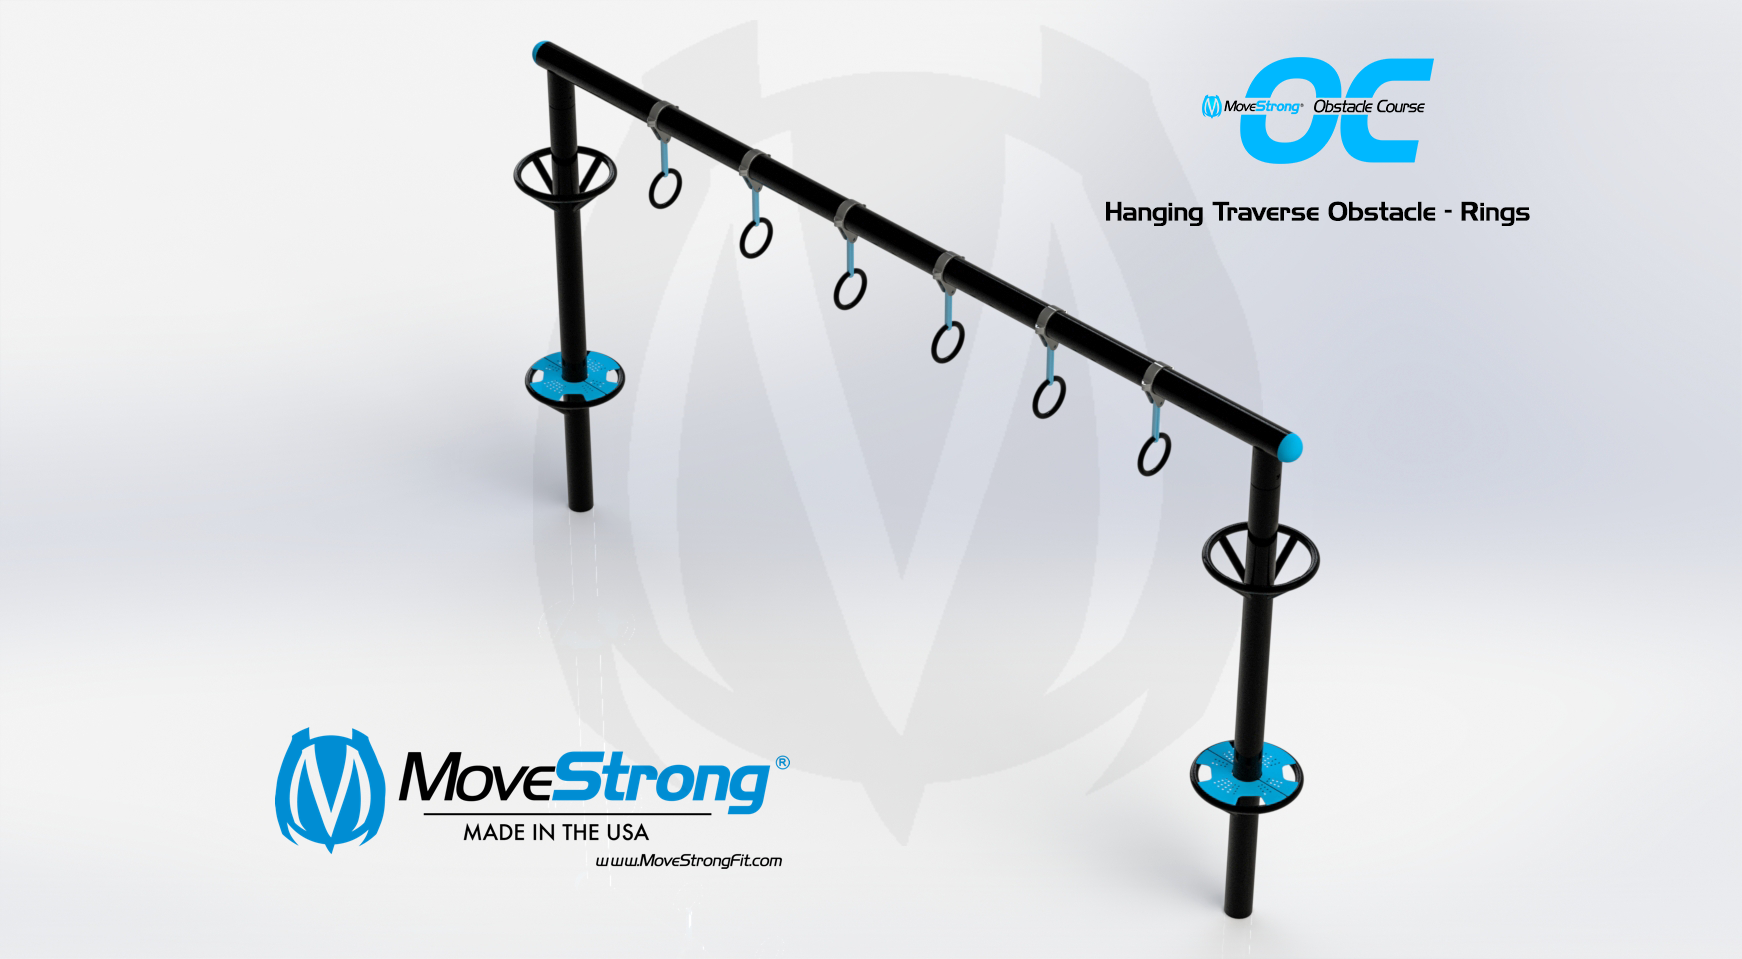 MoveStrong OC Ring Grip Traverse